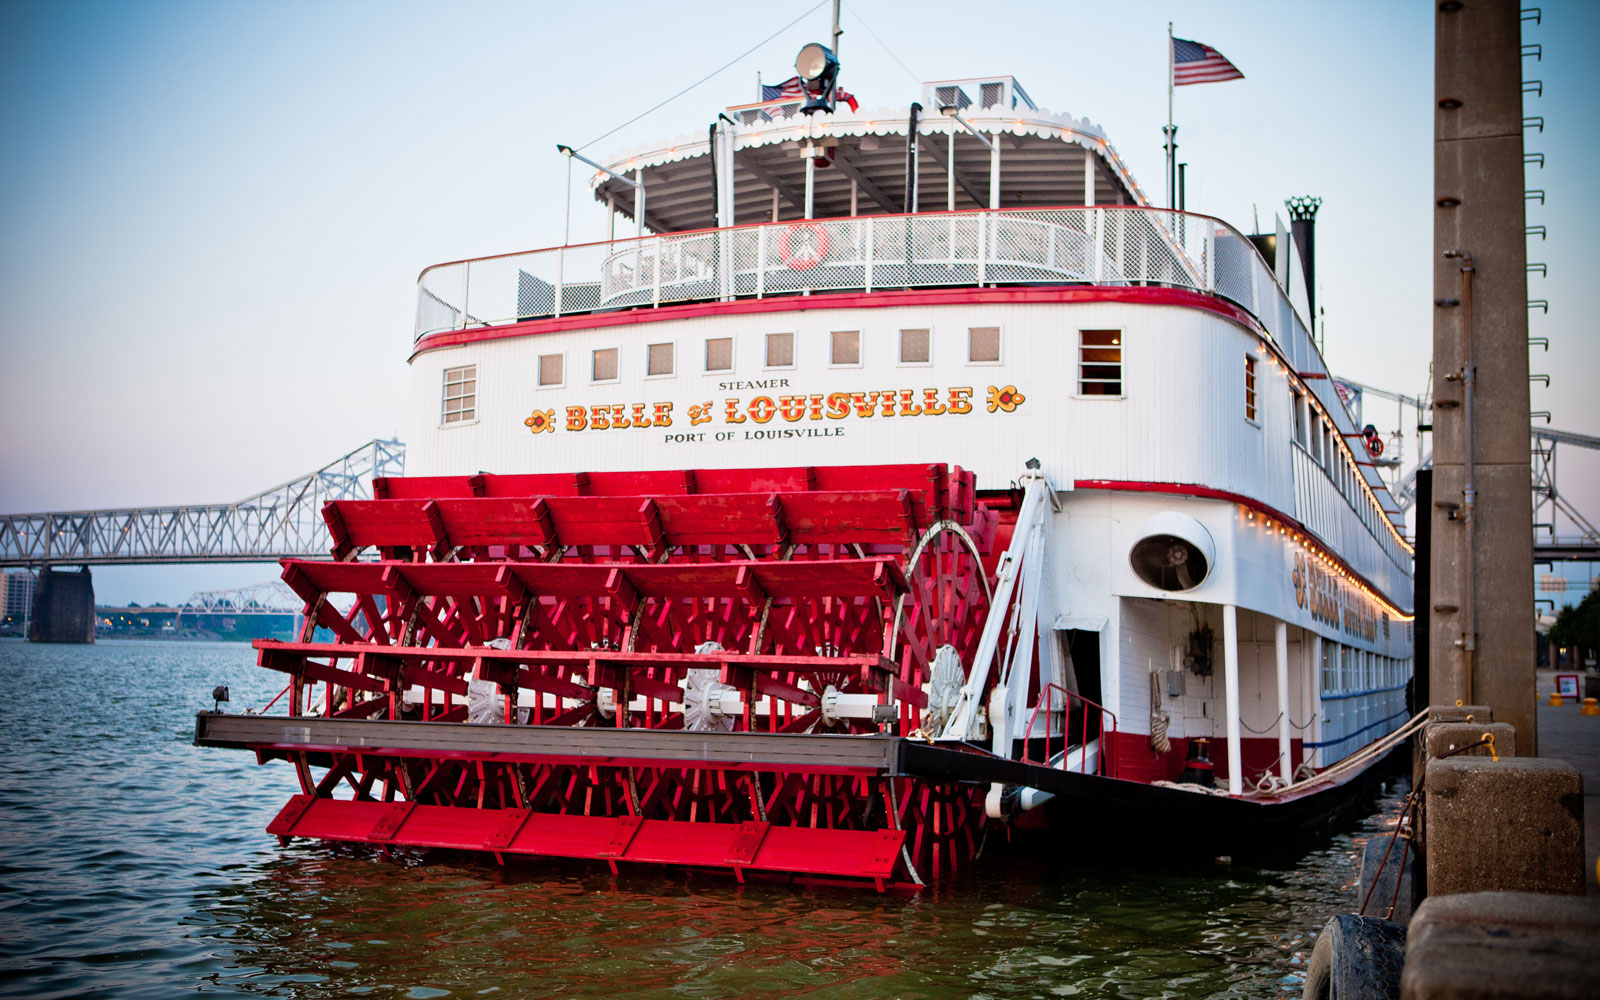 Belle of Louisville Steamboat